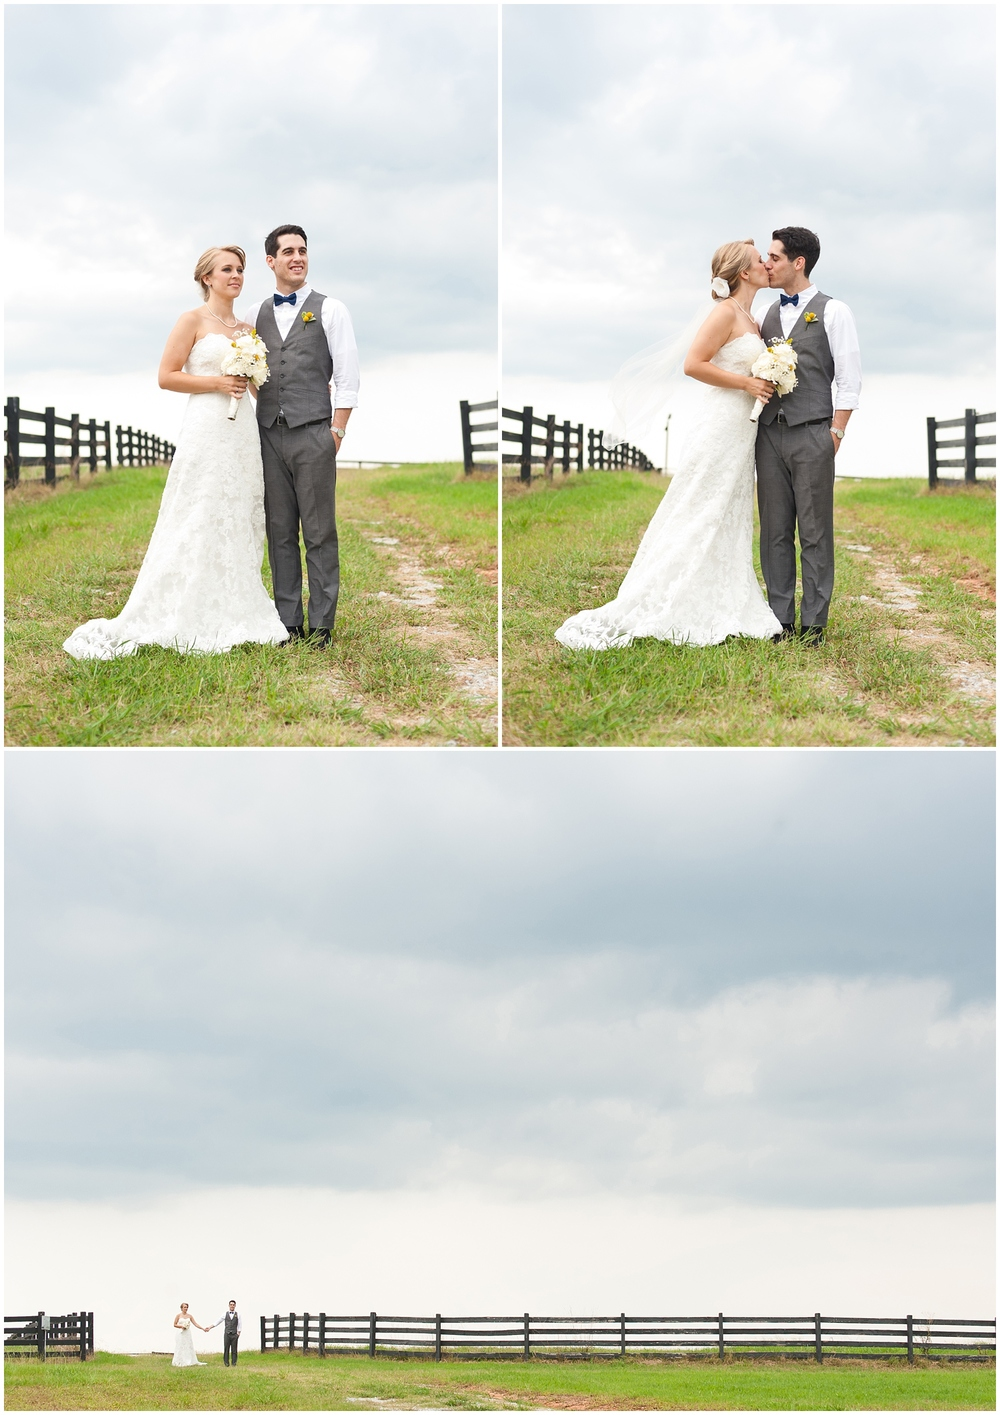 BloomandLo_PeteandAshley_Smithonia_Farm_Wedding_Blog_0023.jpg